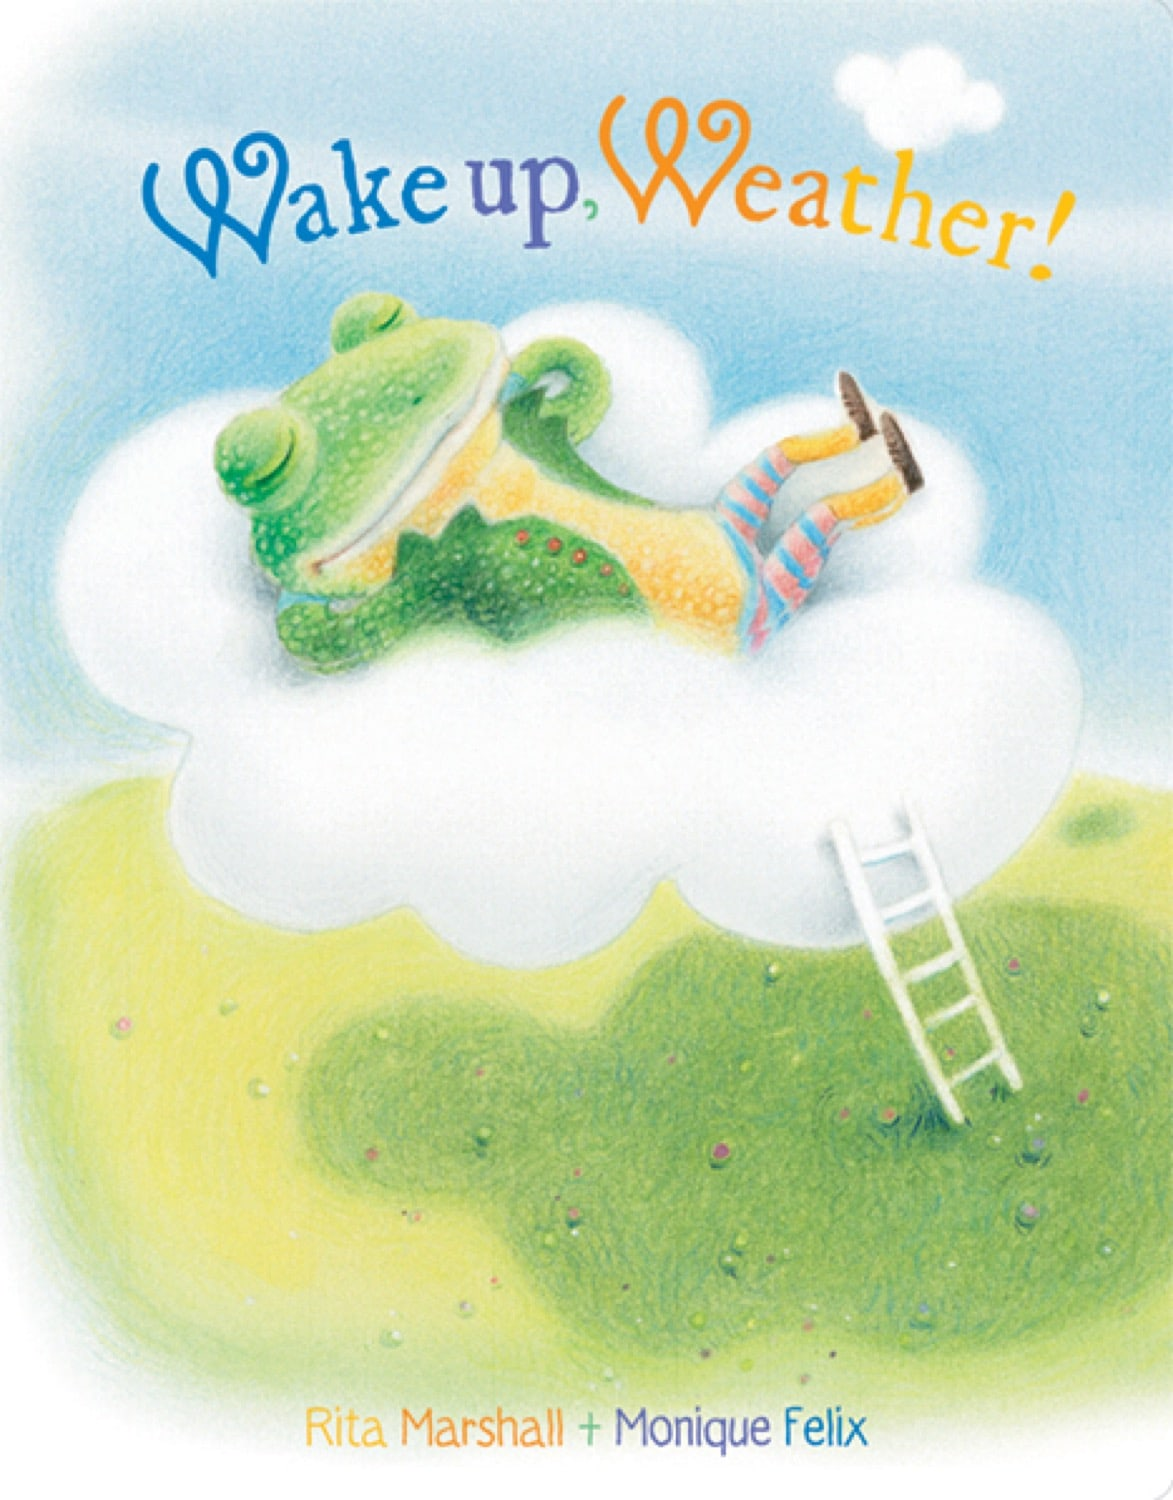 Wake up, Weather!